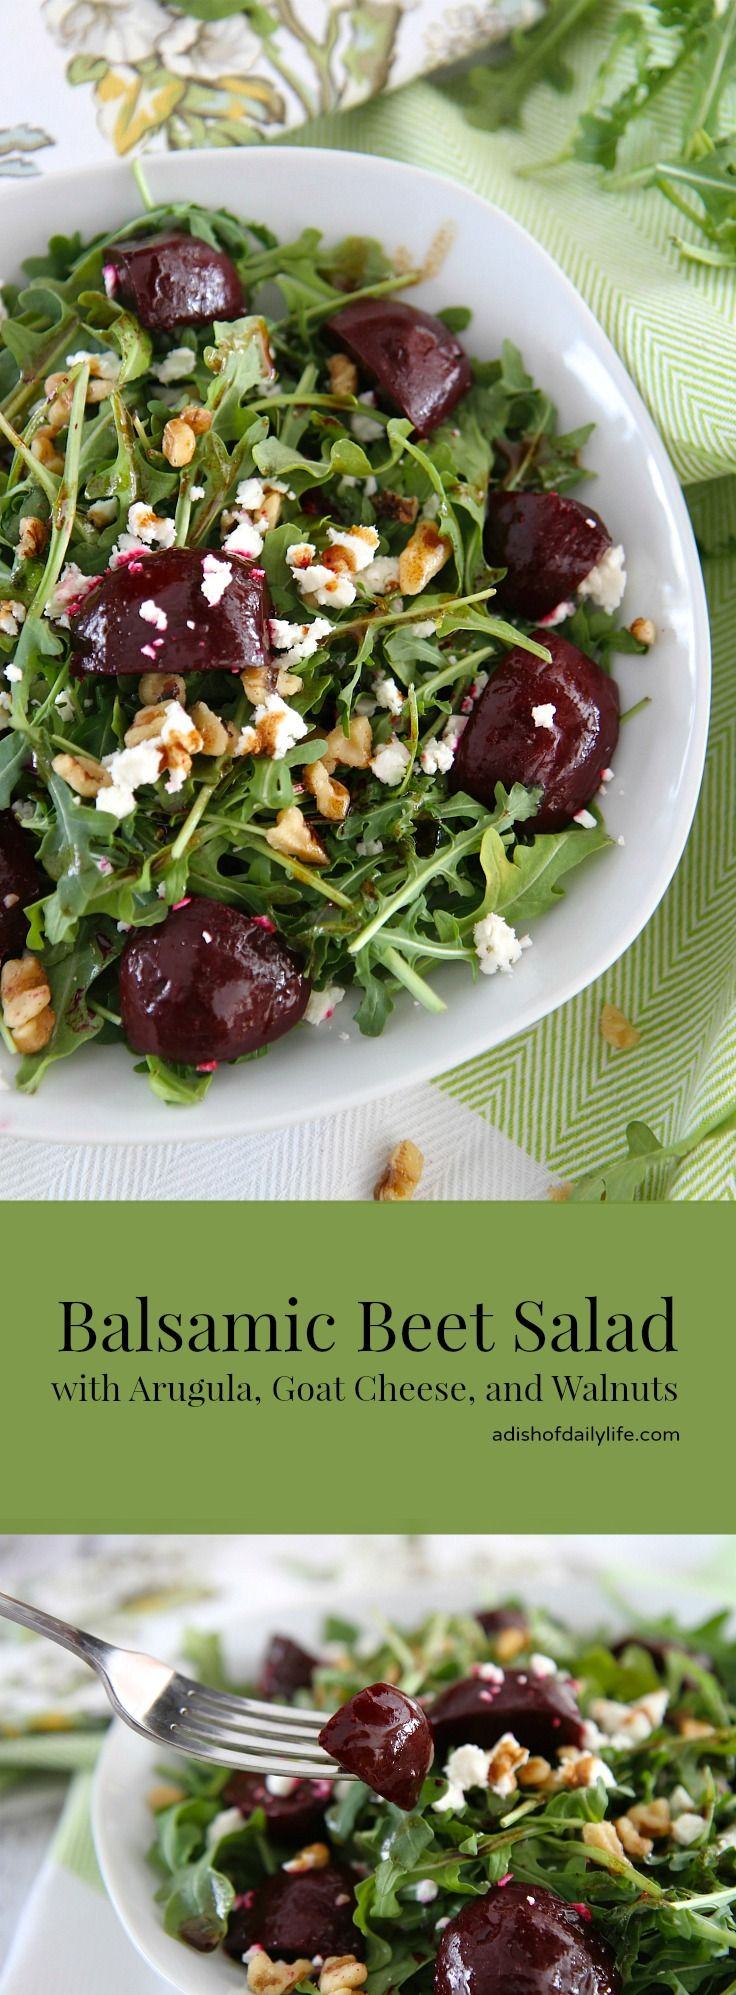 Balsamic Beet Salad with Arugula, Goat Cheese, and Walnuts...perfect side dish for your Christmas dinner! Vegetarian, gluten free, and can easily become vegan by simply omitting the goat cheese.